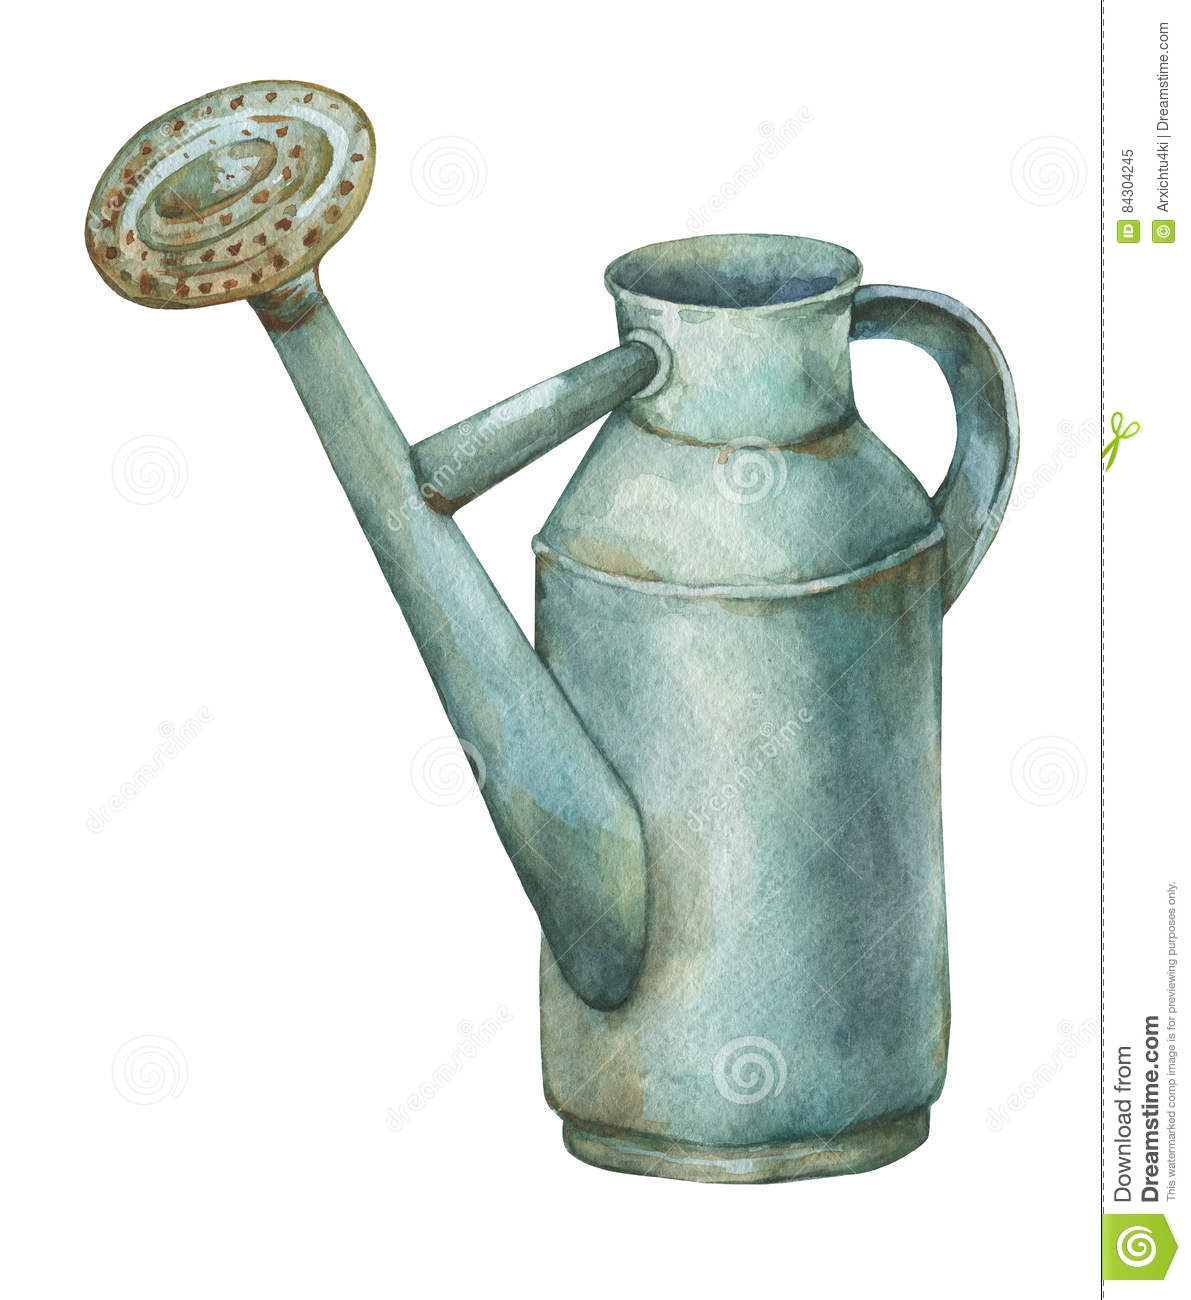 Gardening Tools Rusty Tin Watering Can For Watering Flowers Stock Illustration Illustration